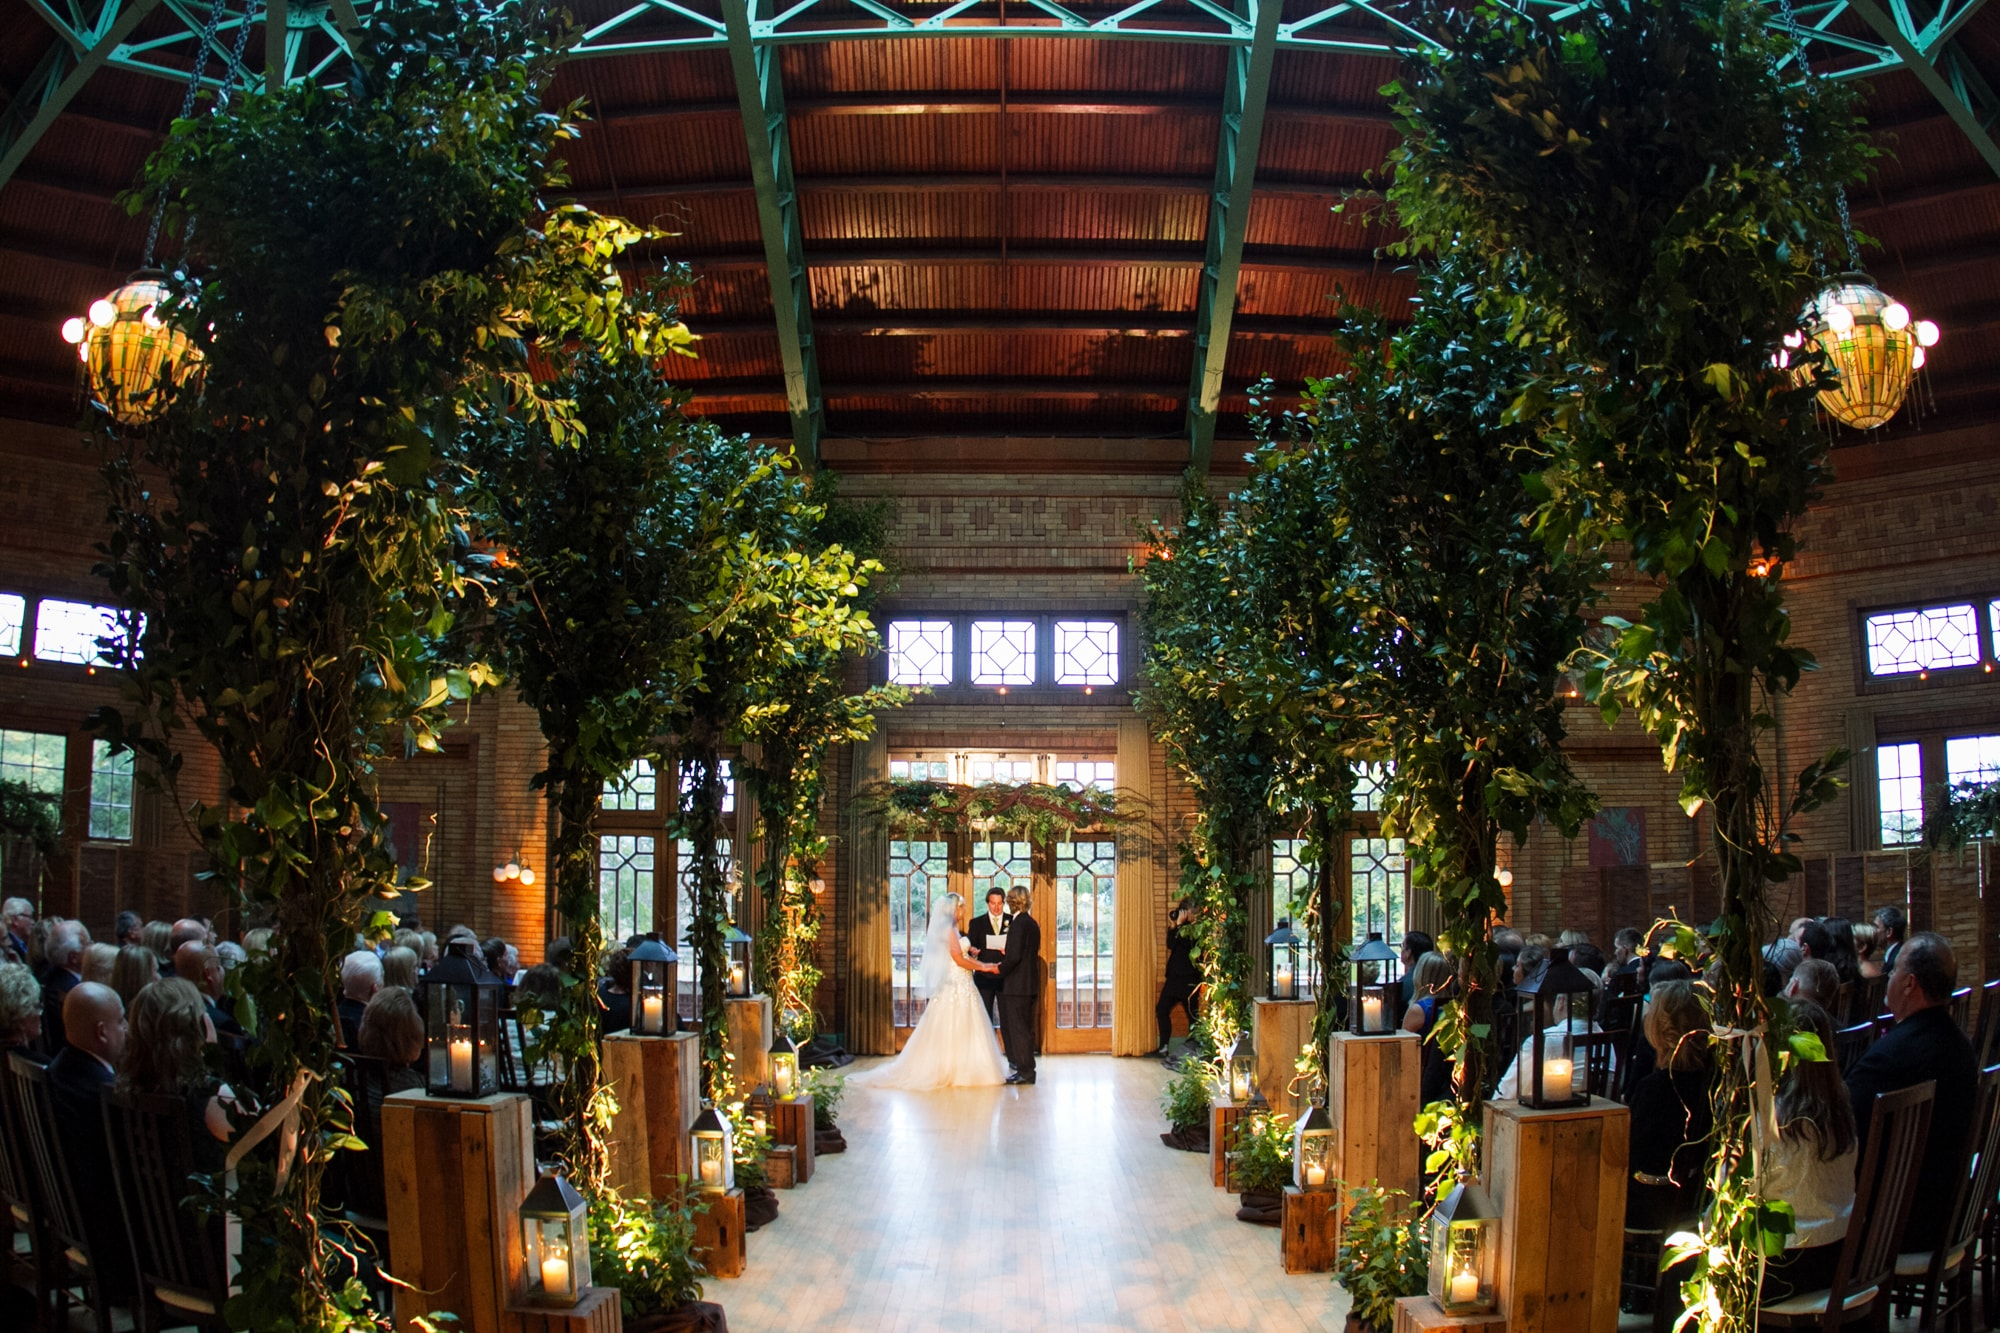 Cafe Brauer wedding ceremony with garden decor